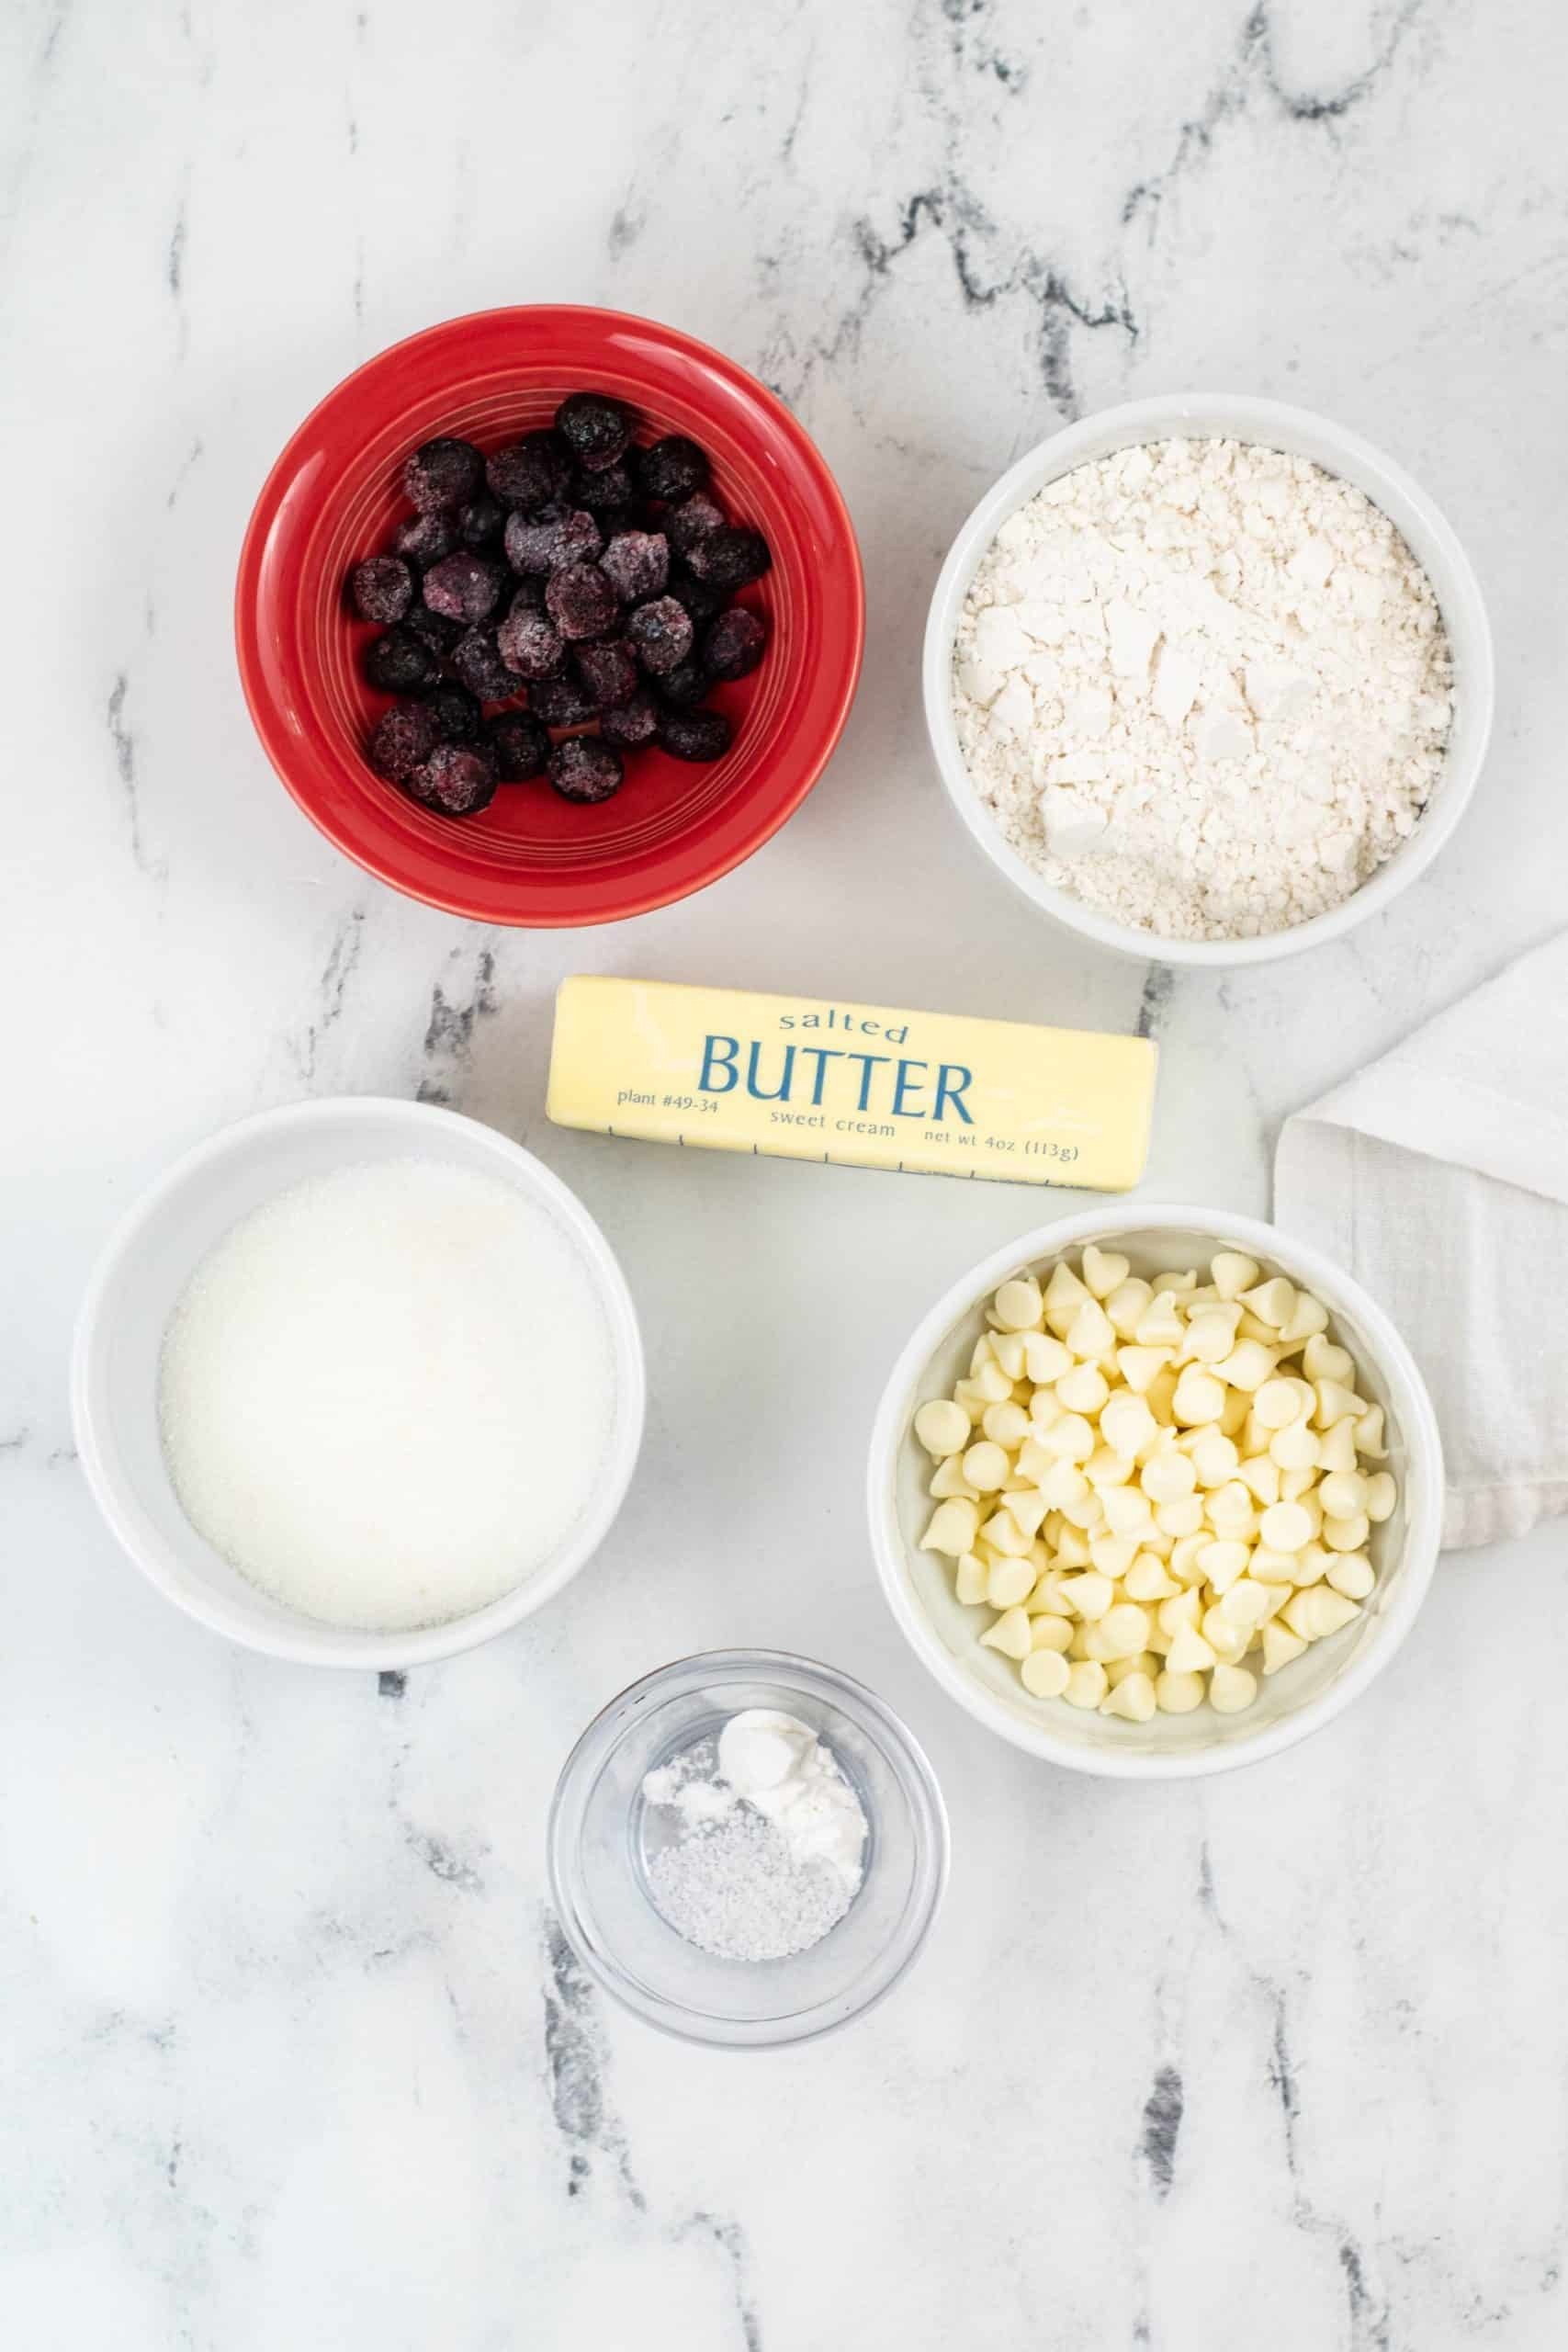 Butter, chips blueberries and cookie mix.